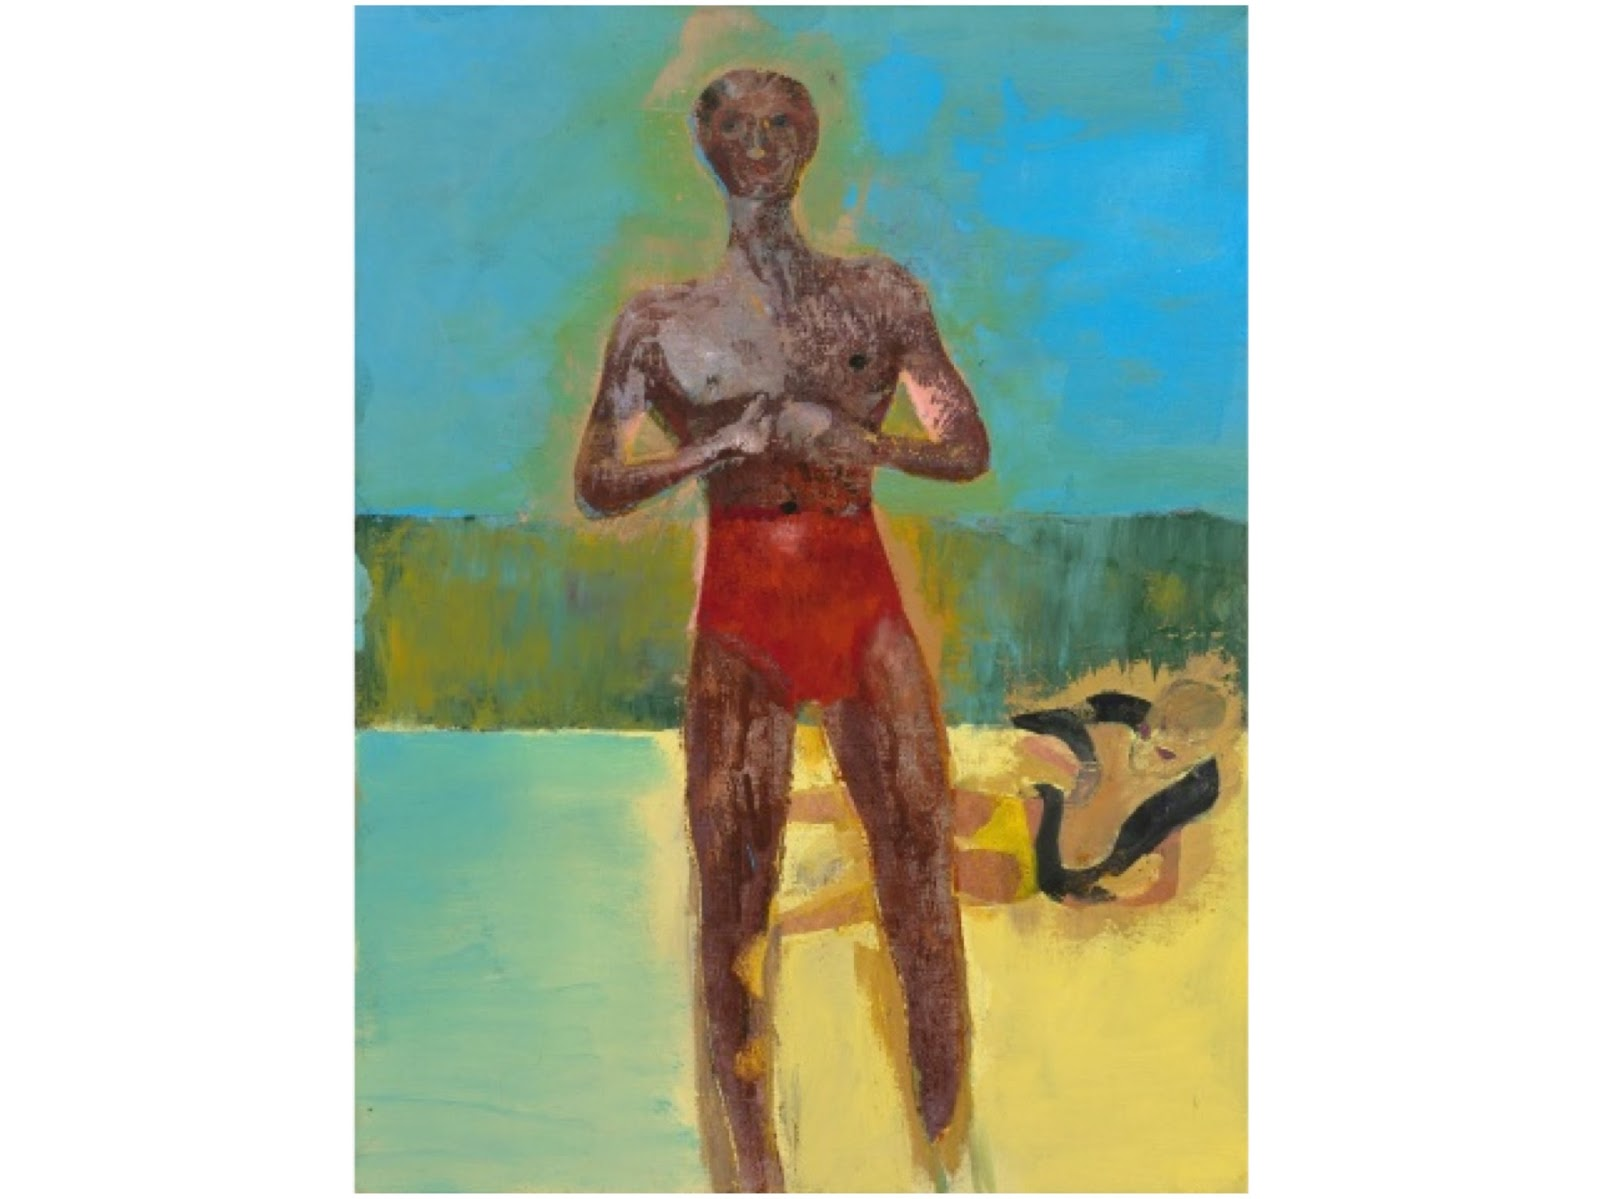 Bather II, Peter Doig